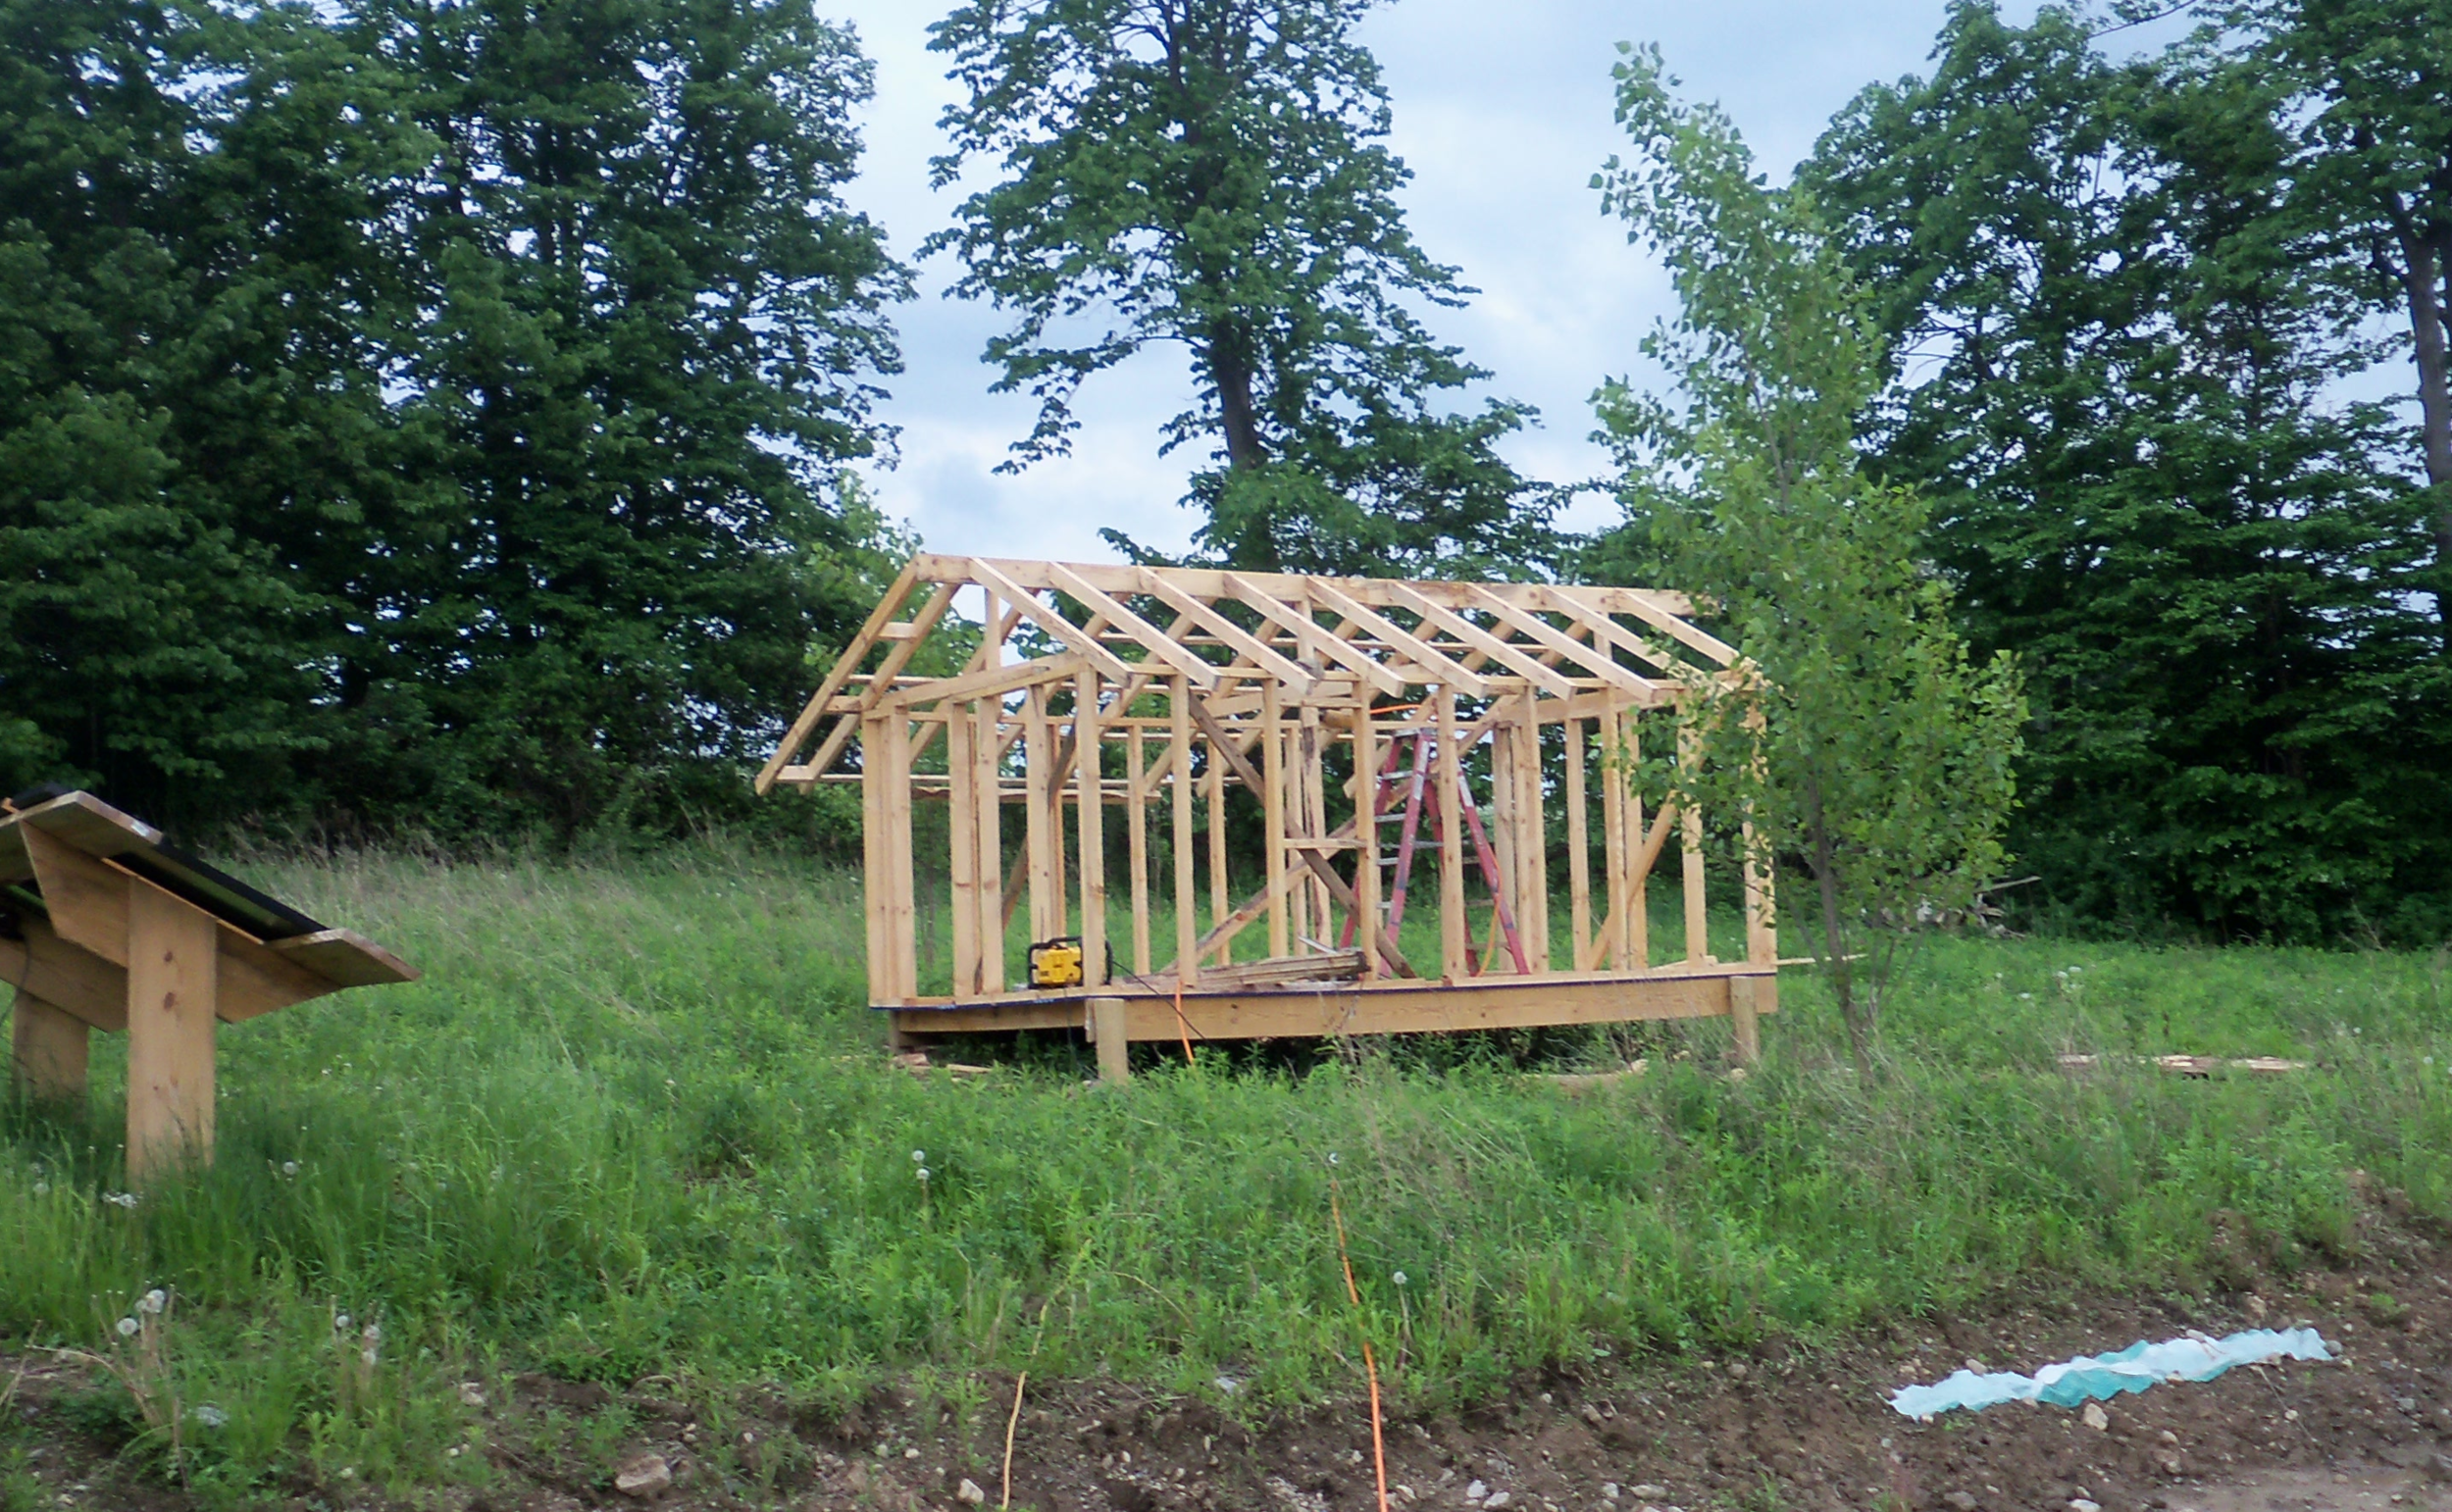 The coop is going to be a very cute little building up there.